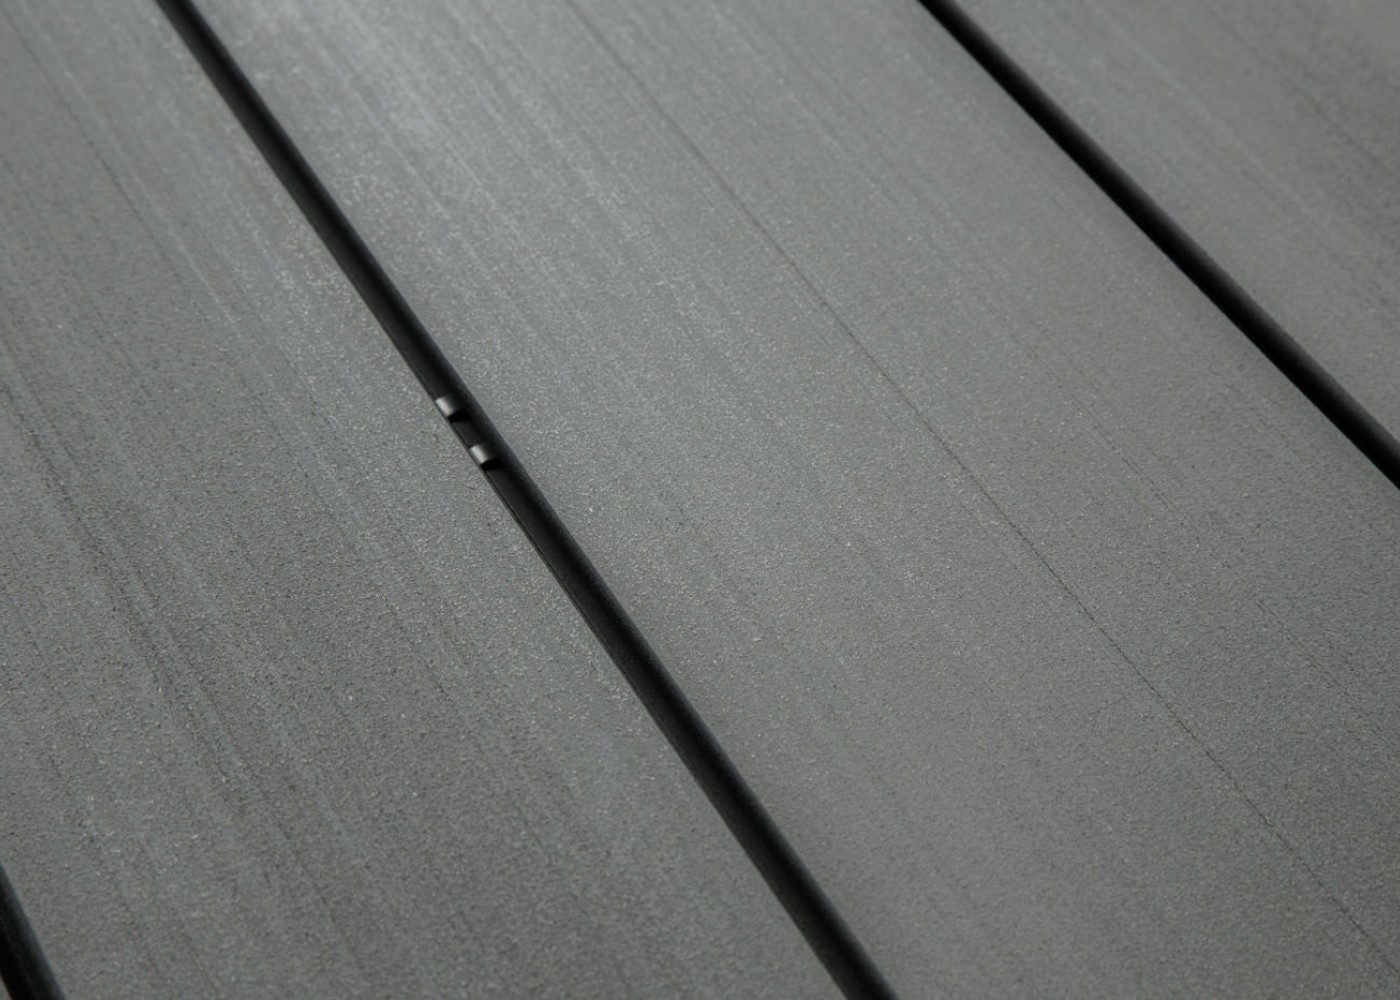 Lame Terrasse Lisse Bois Composite Teinte Gris Anthracite Lisse Fixation